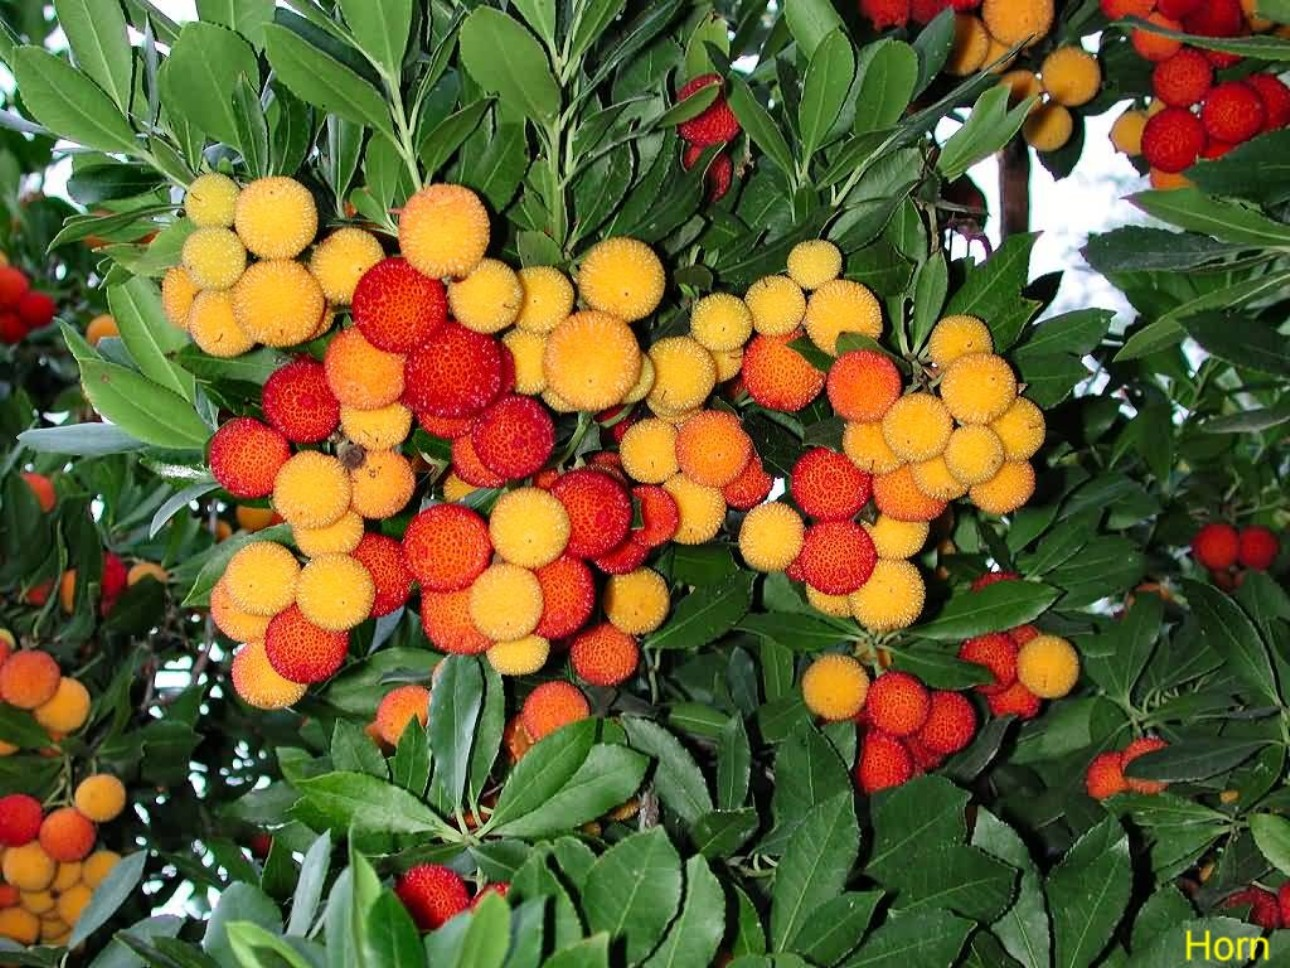 Online Plant Guide - Arbutus unedo / Strawberry Tree